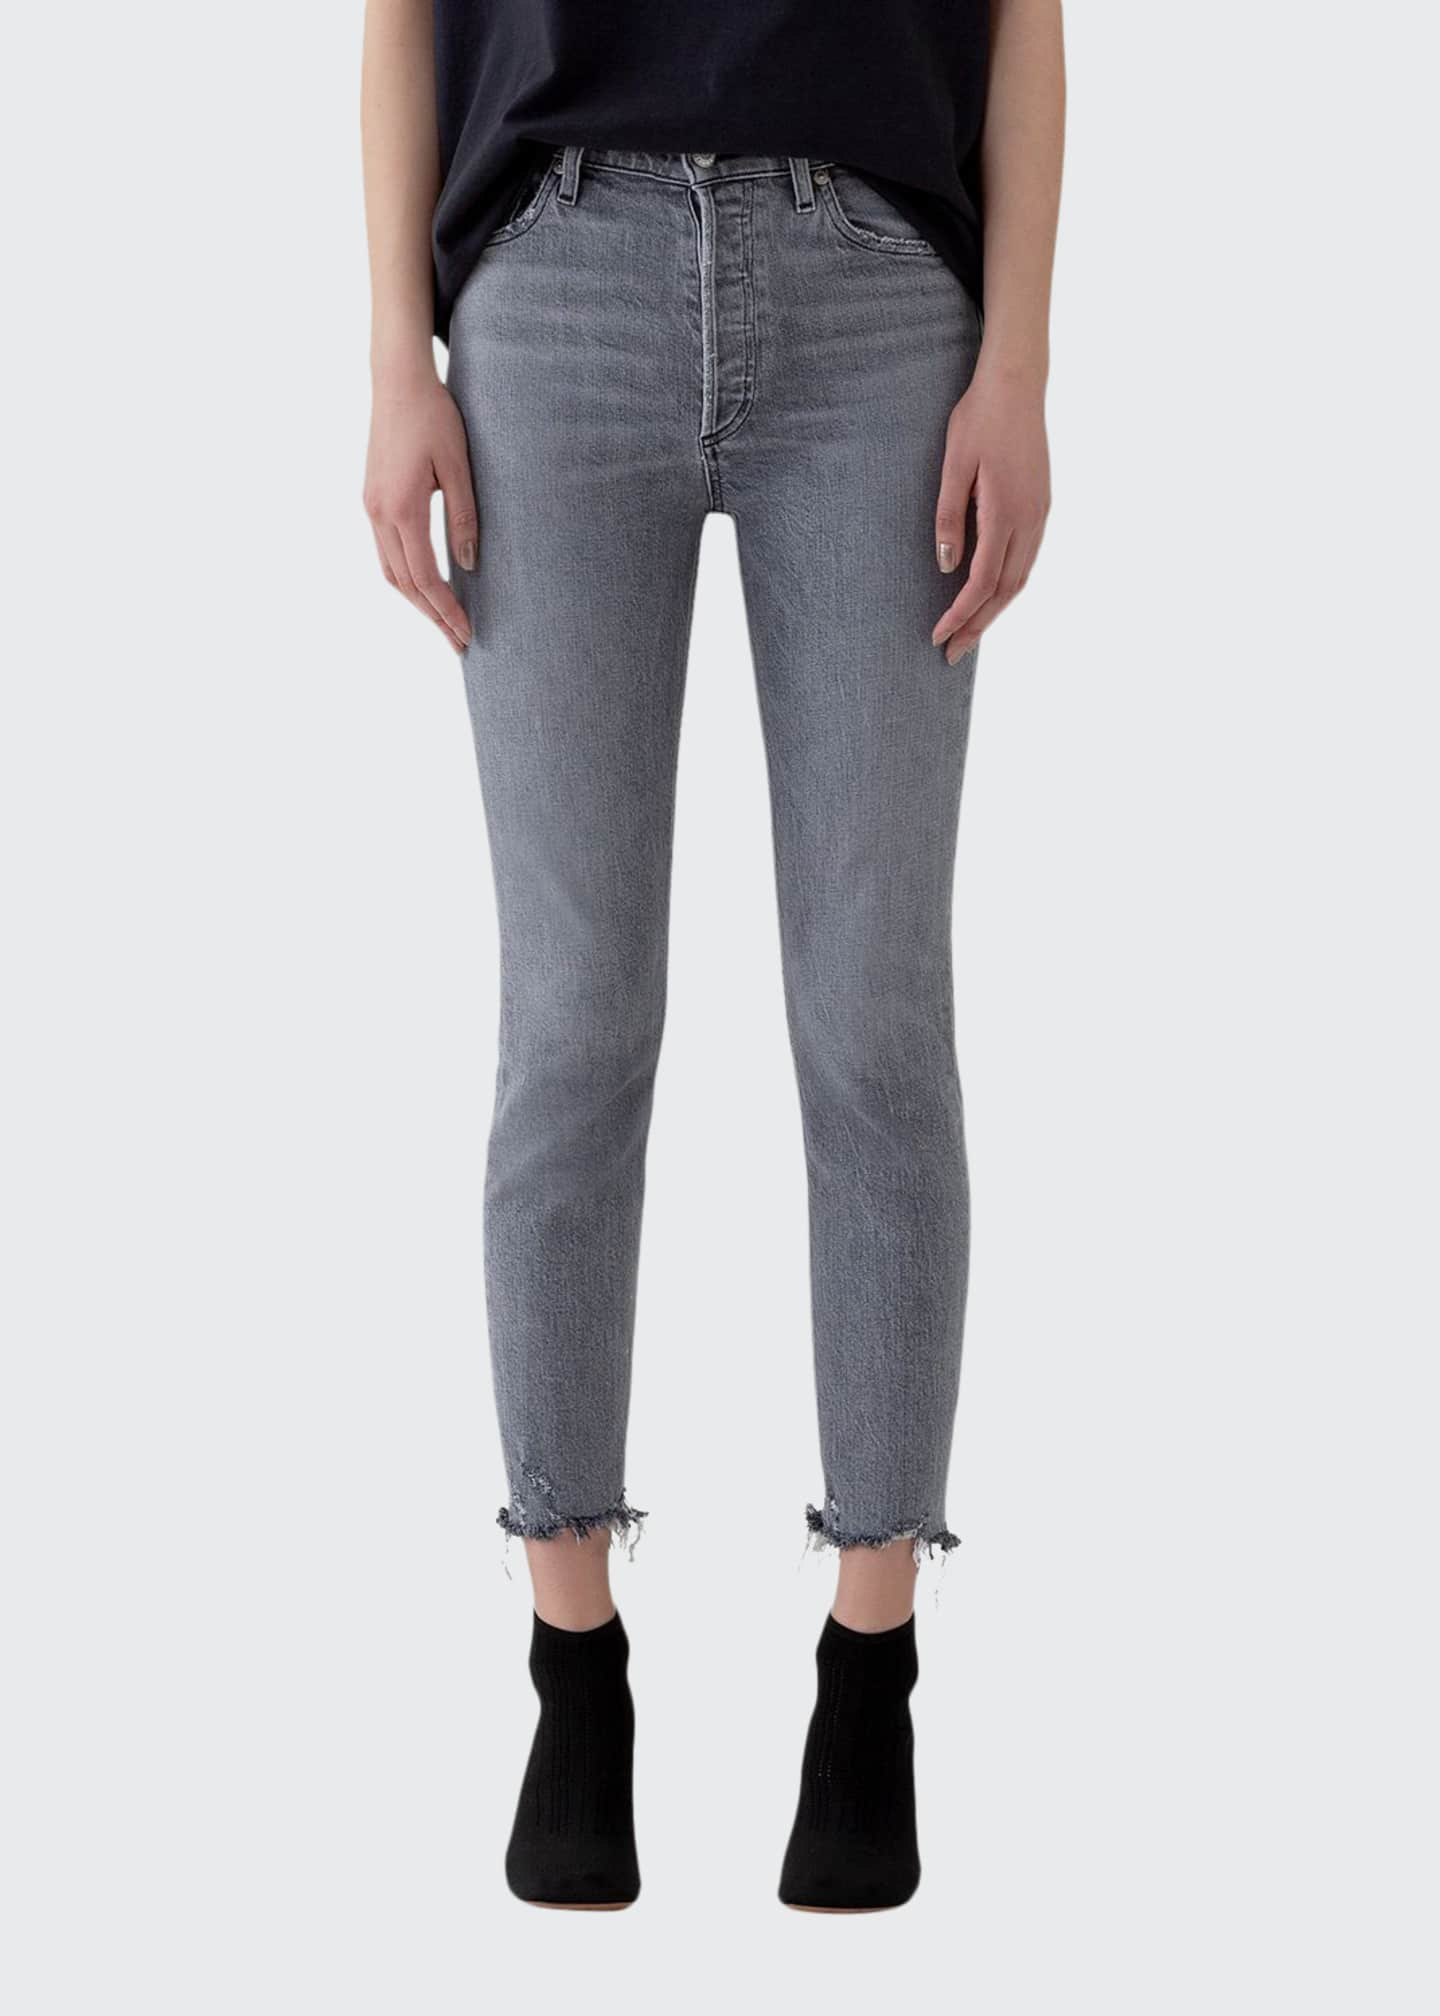 AGOLDE Nico High-Rise Slim Ankle Jeans with Raw